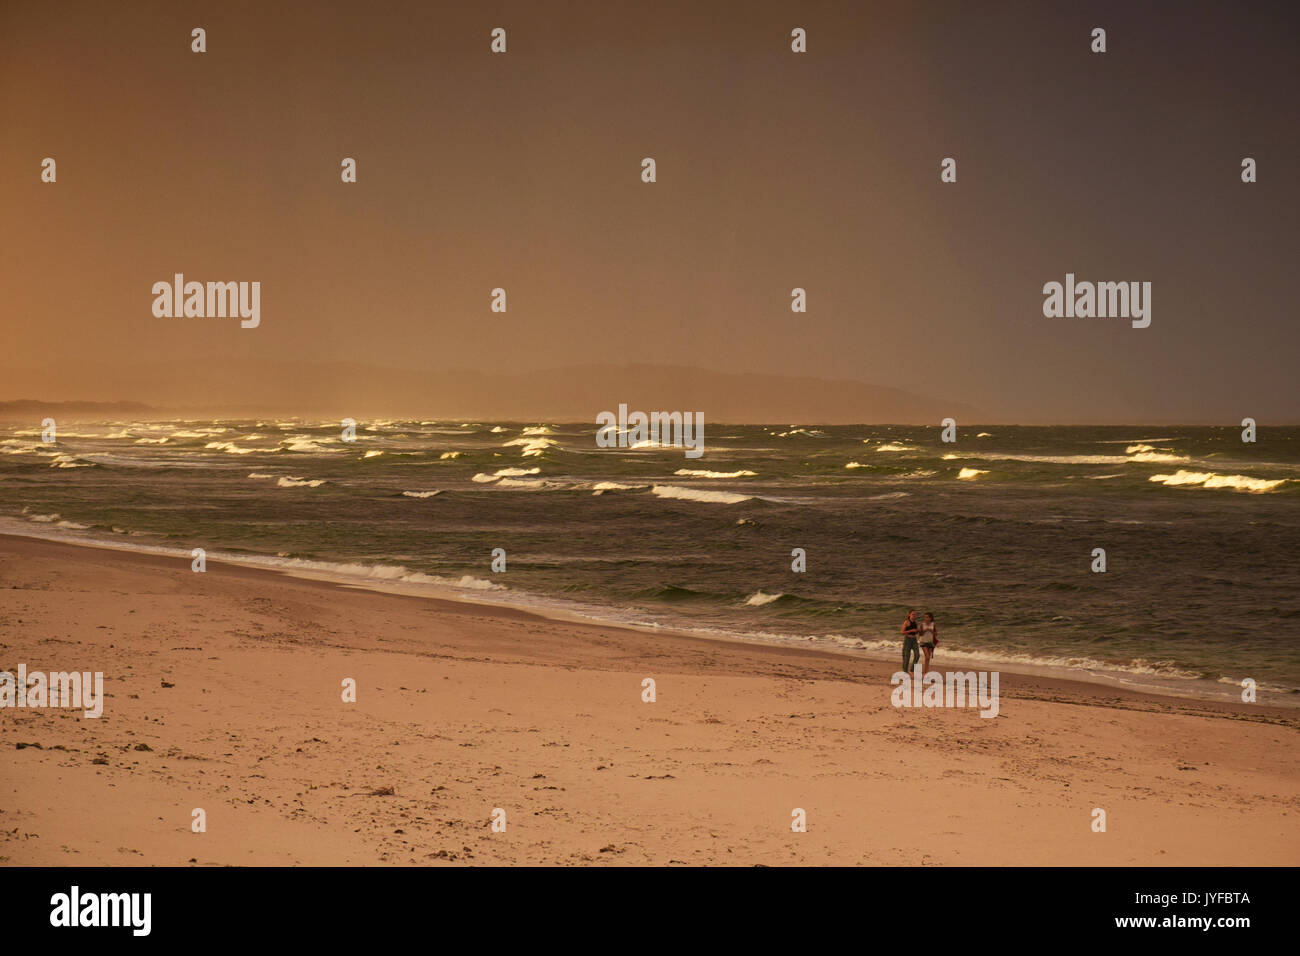 Couple on the Seven Mile Beach with Sea, New South Wales, Australia - Stock Image